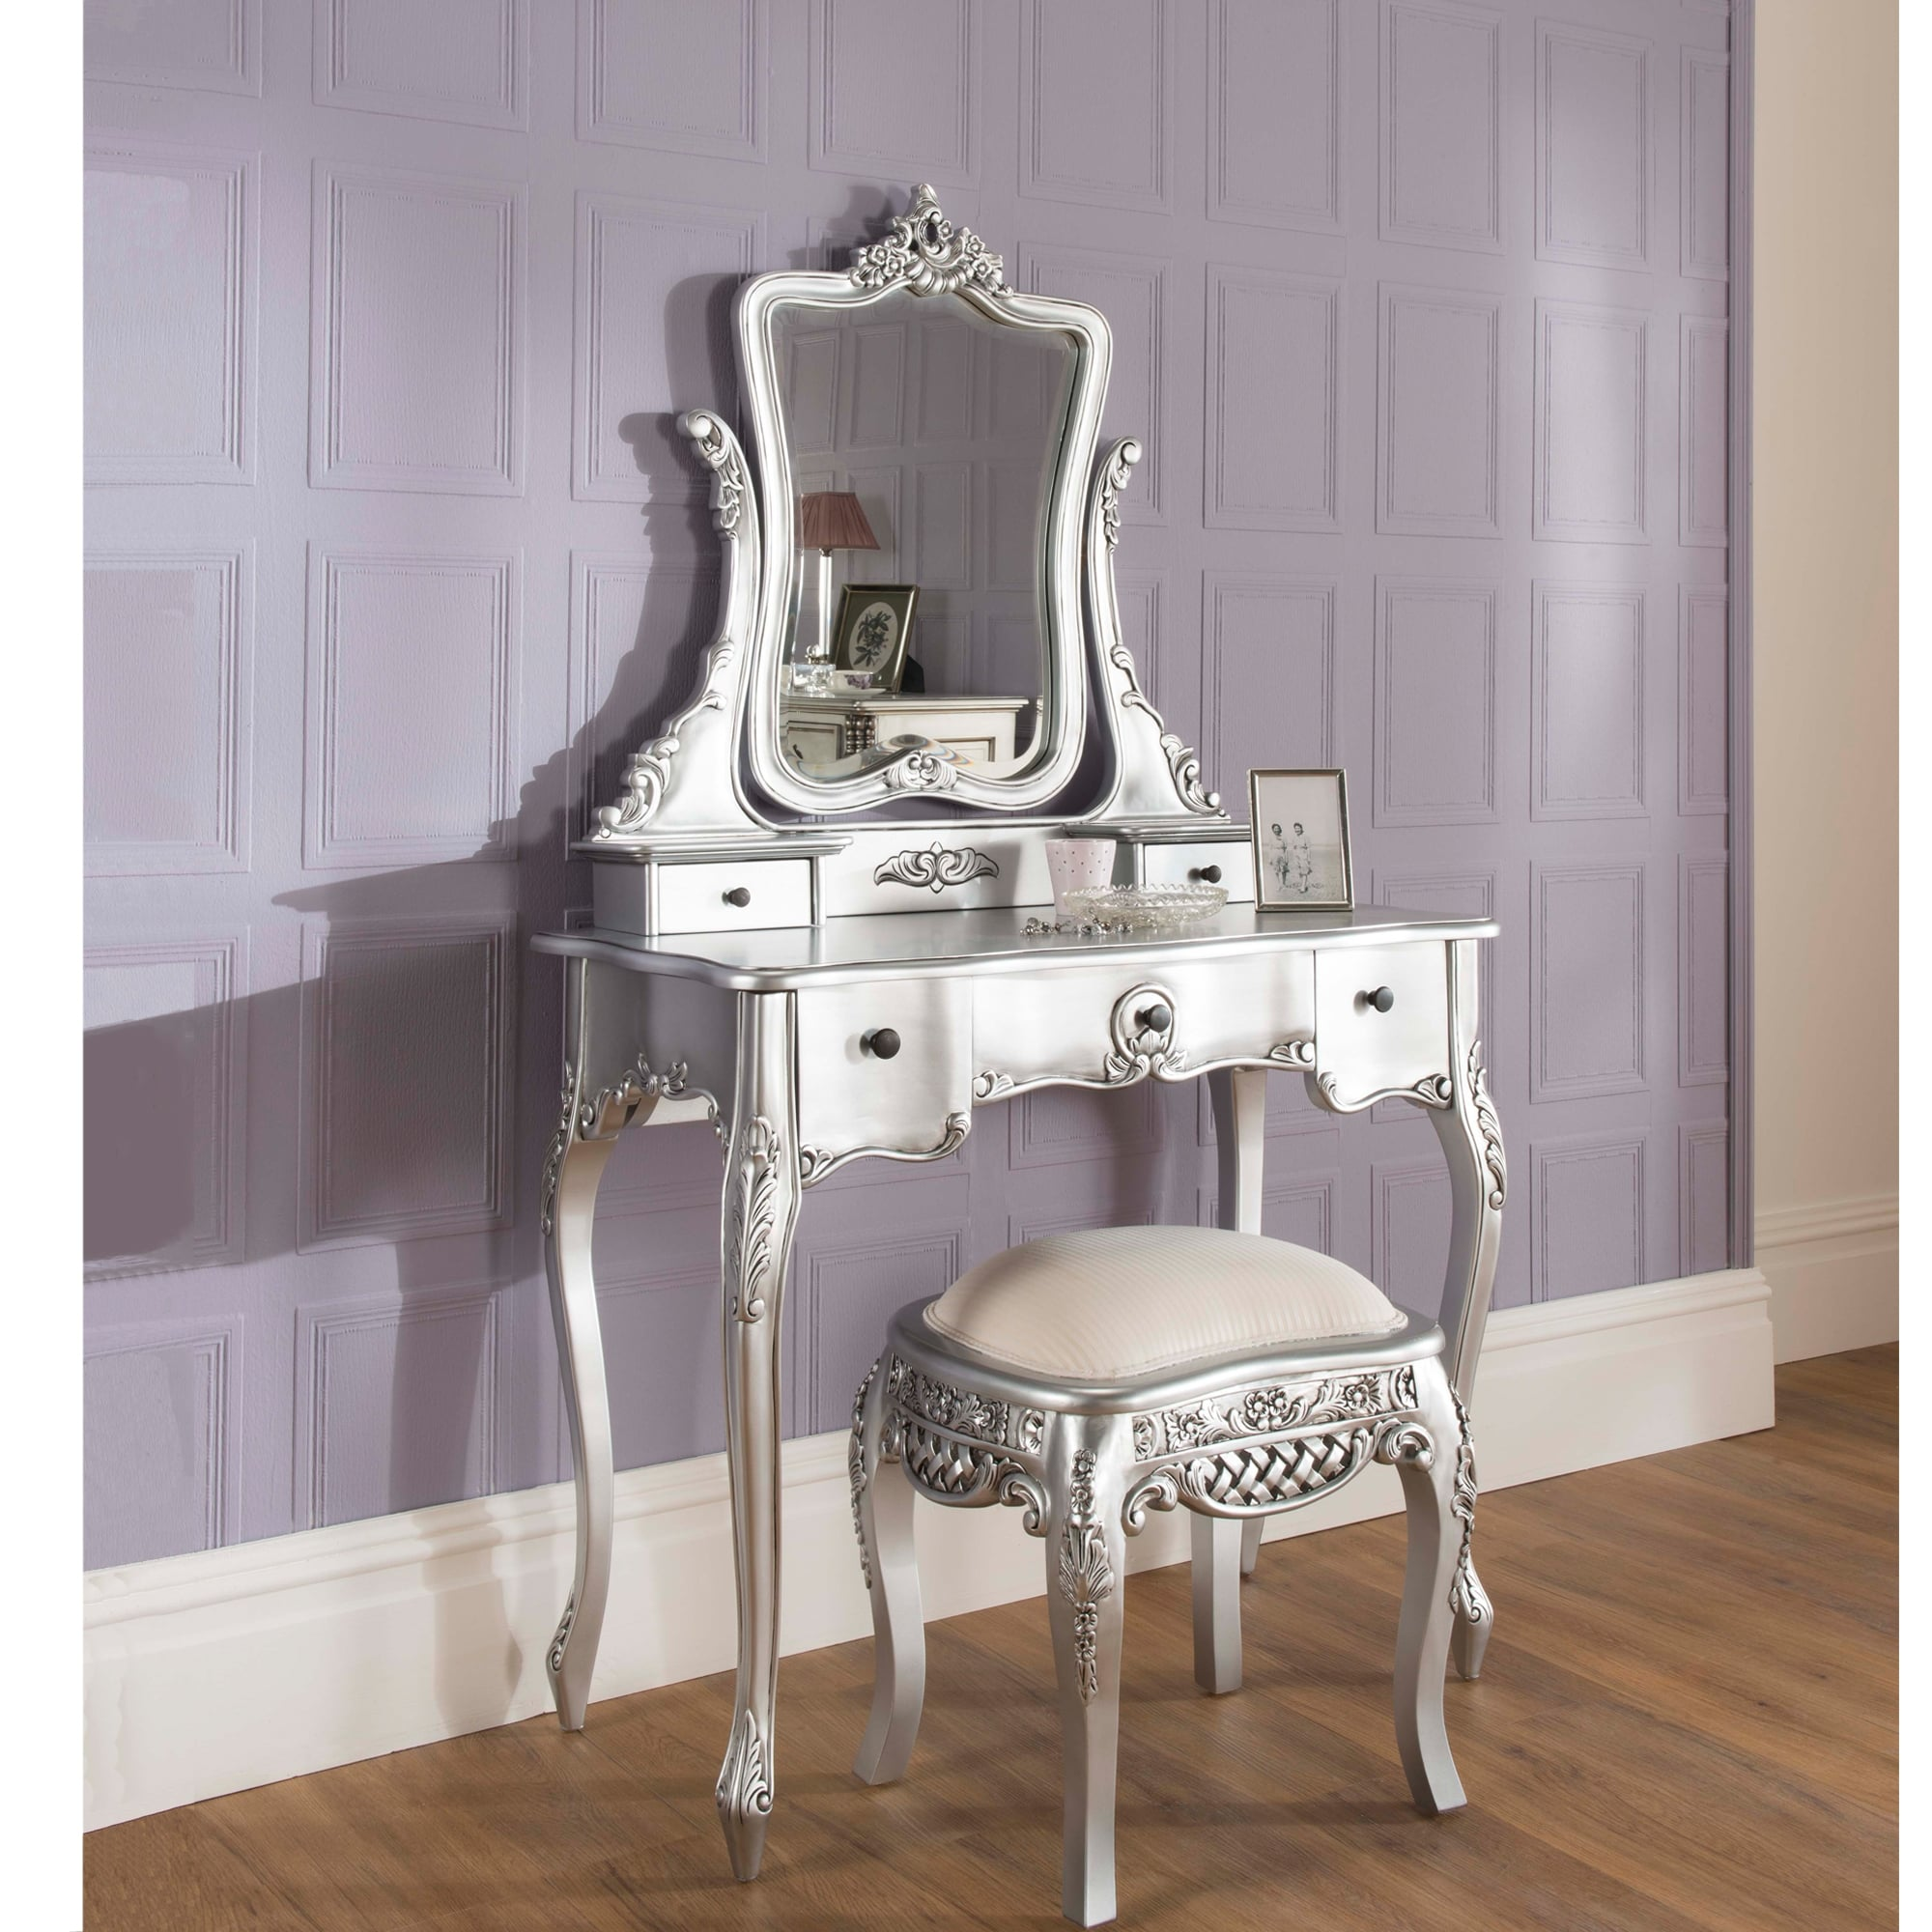 Merveilleux La Rochelle Antique French Silver Dressing Table Set